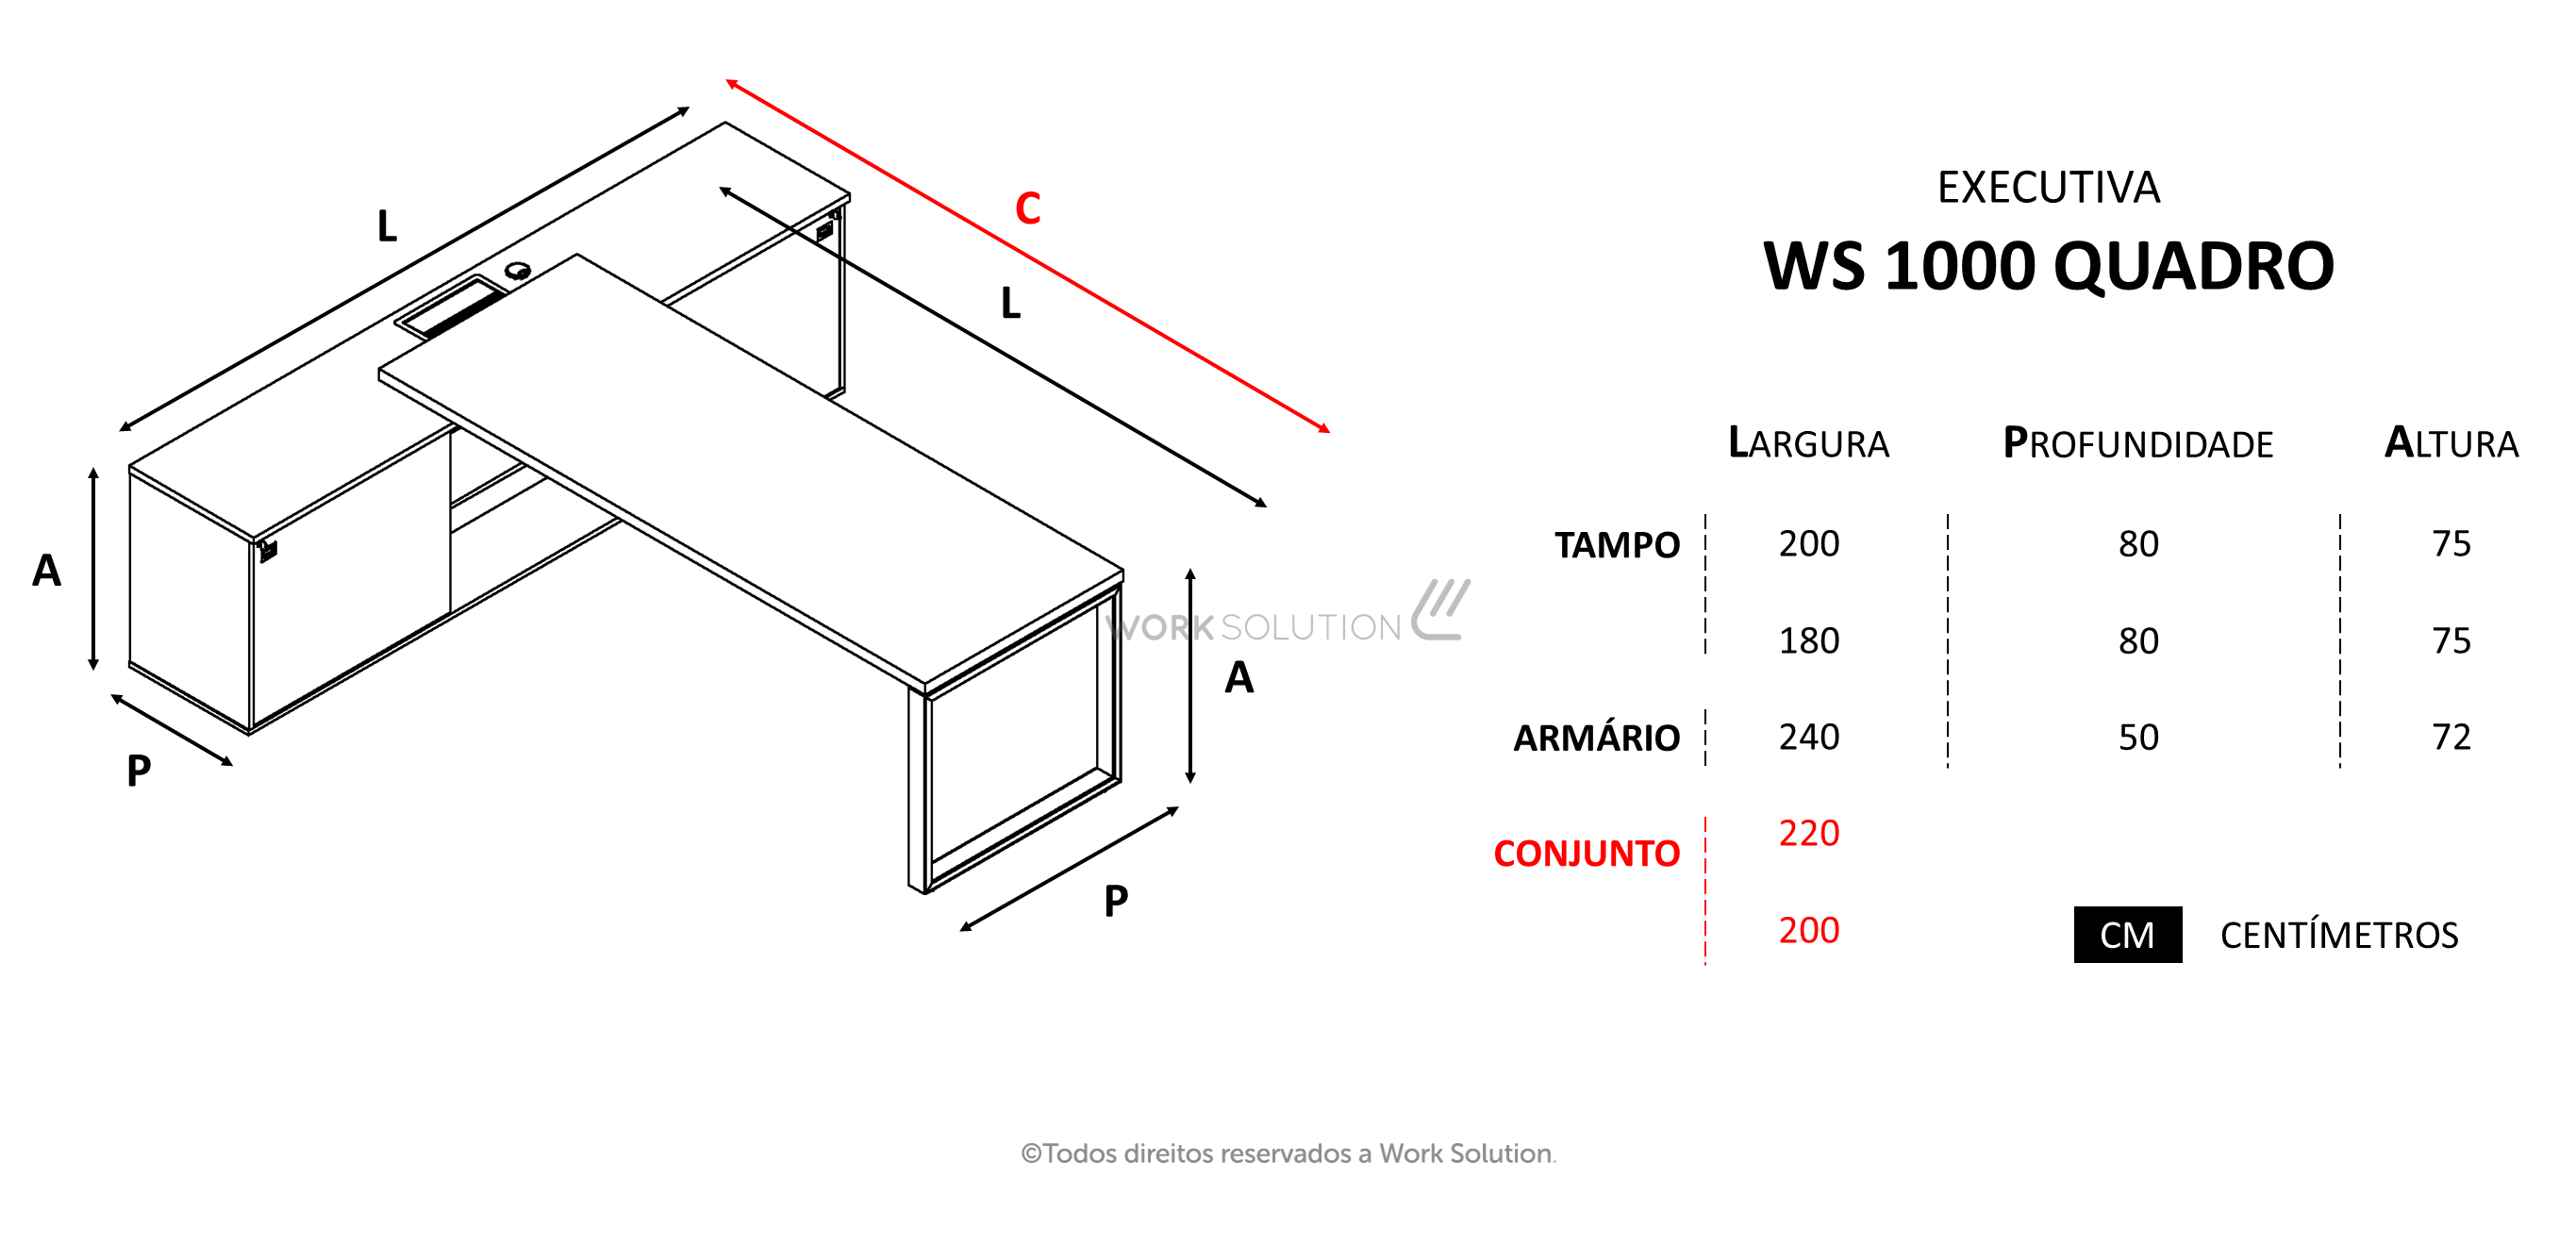 dimensoes-executiva-ws1000-5